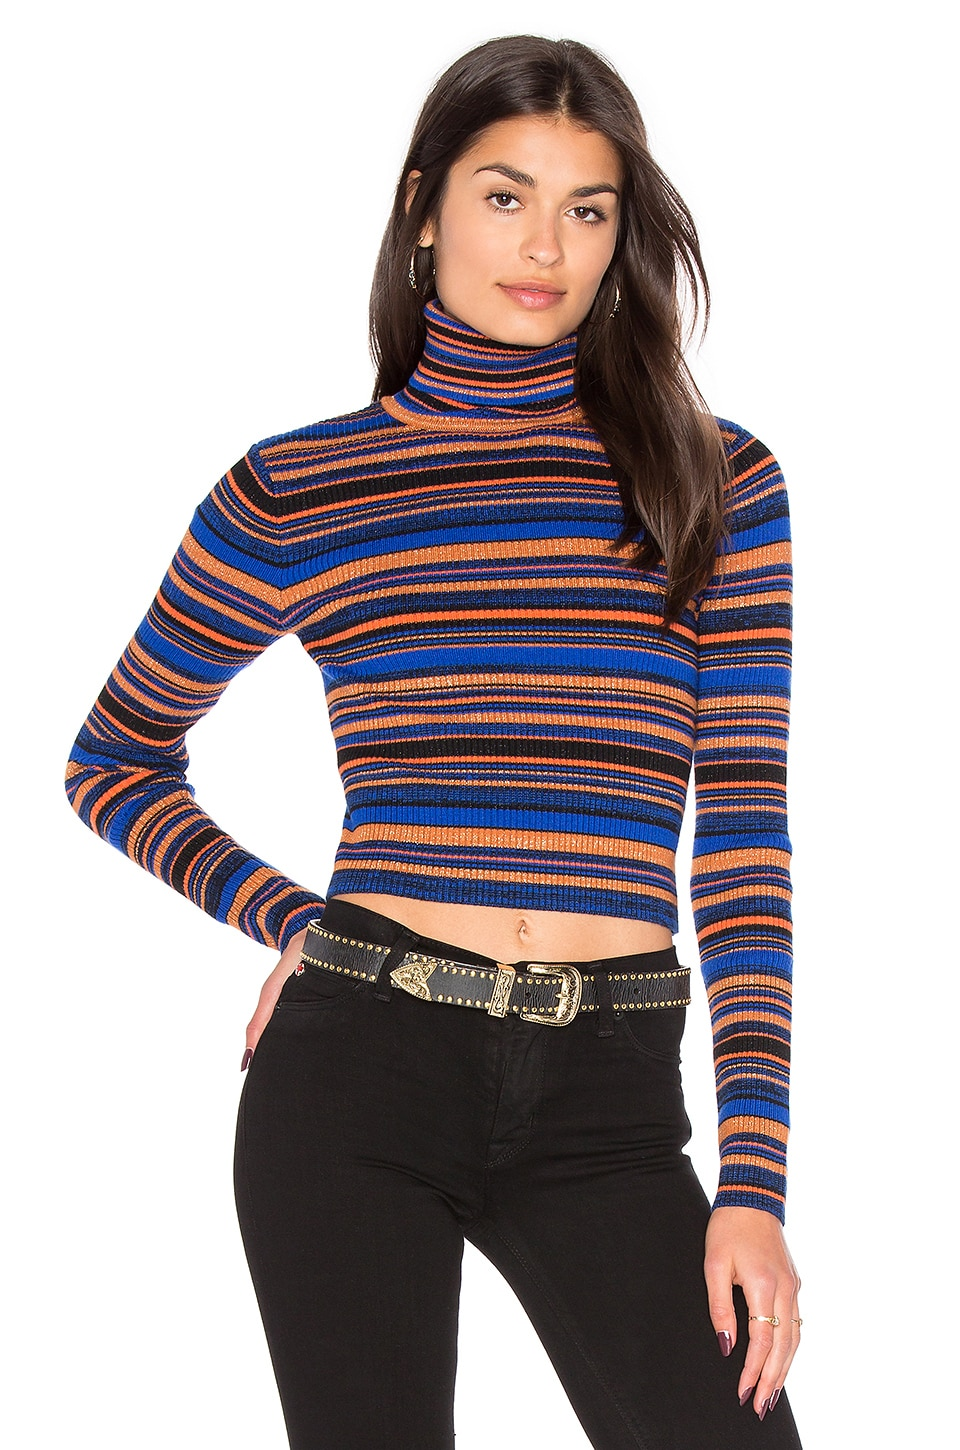 MAJORELLE Shelly Sweater in Stripe